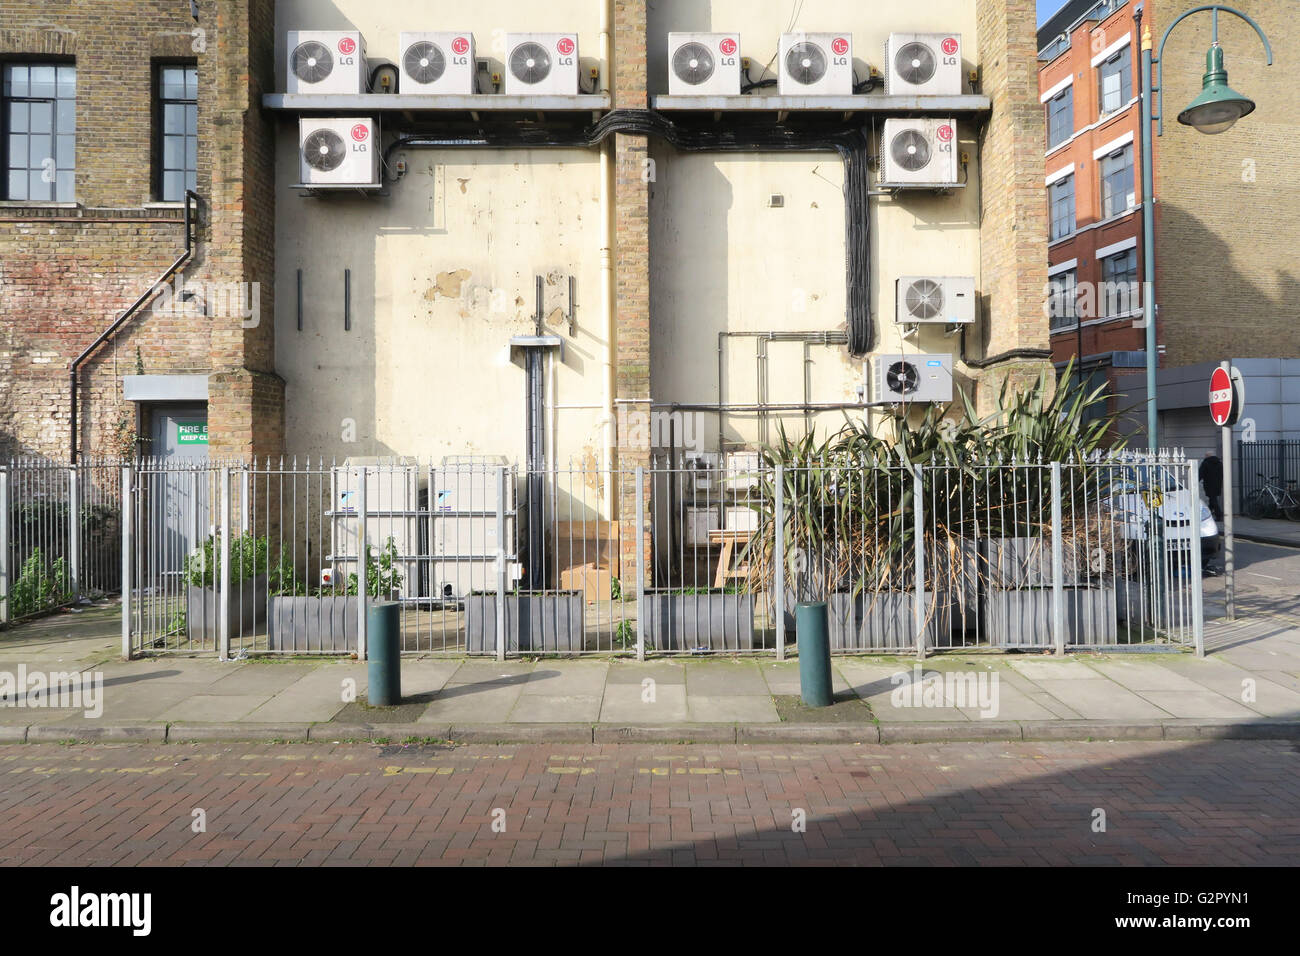 Air conditioning units, metal fence, plants, bollards at the back of a commercial unit - Stock Image